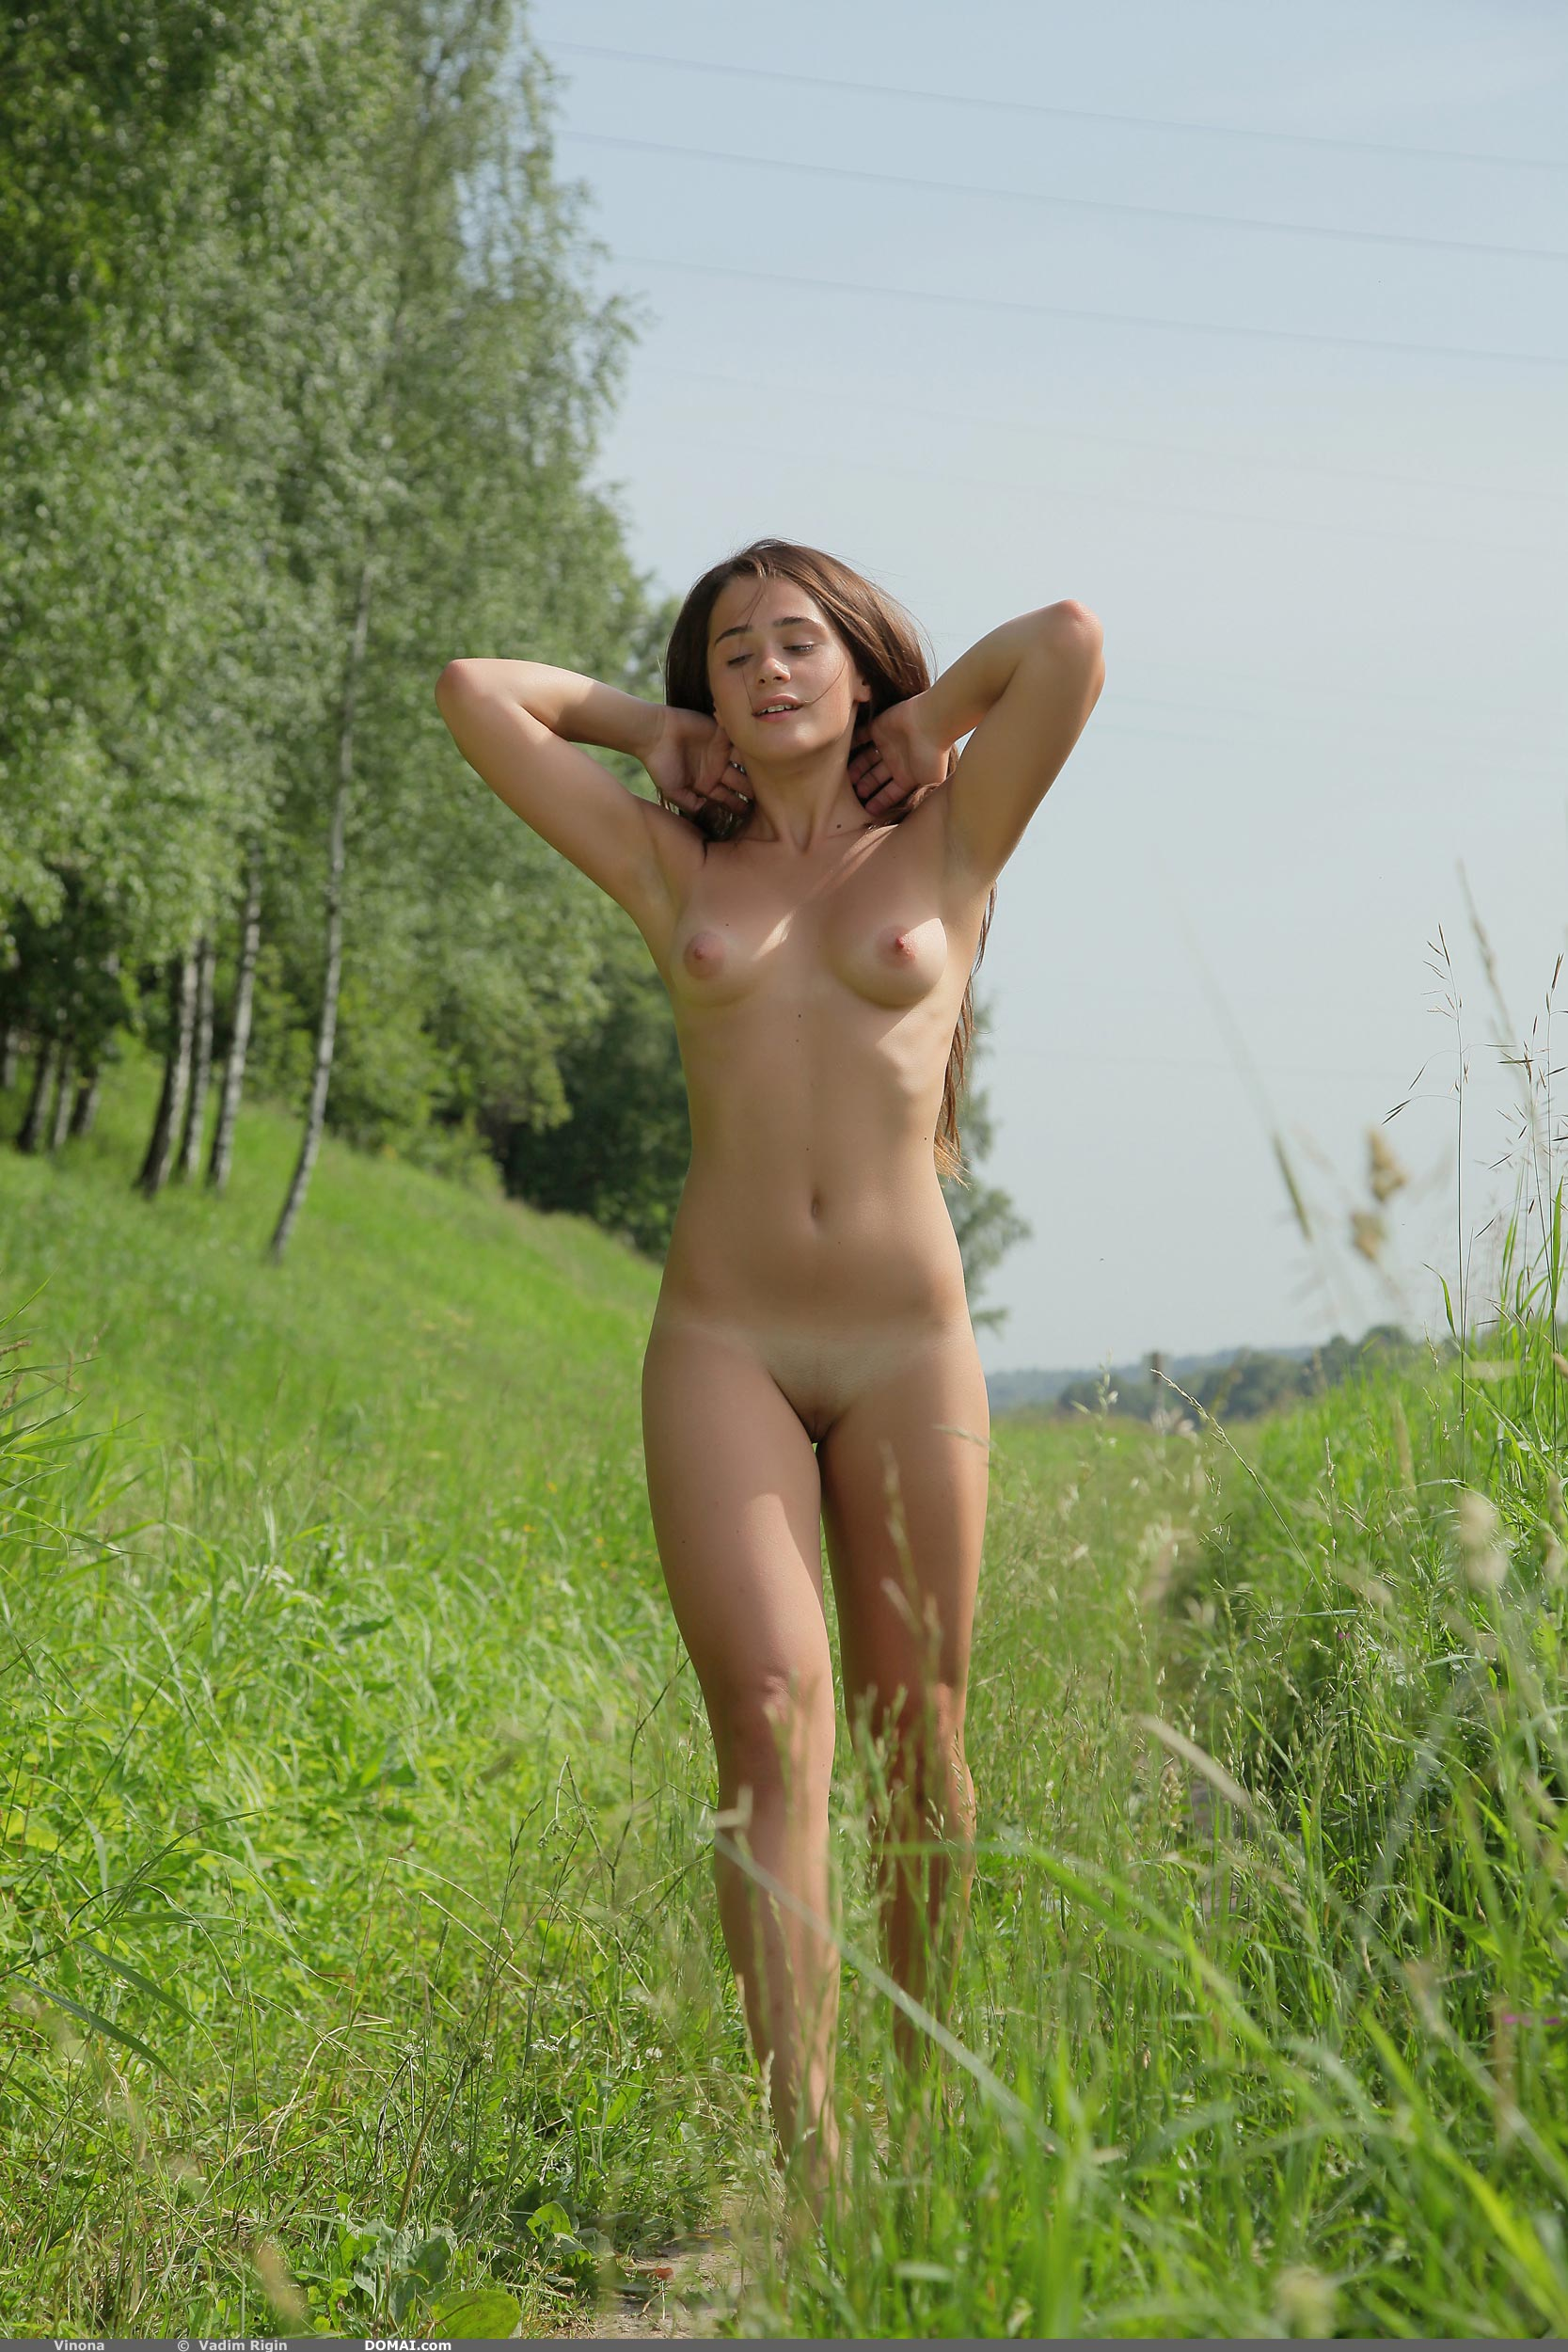 vinona-nude-young-outdoor-river-domai-05